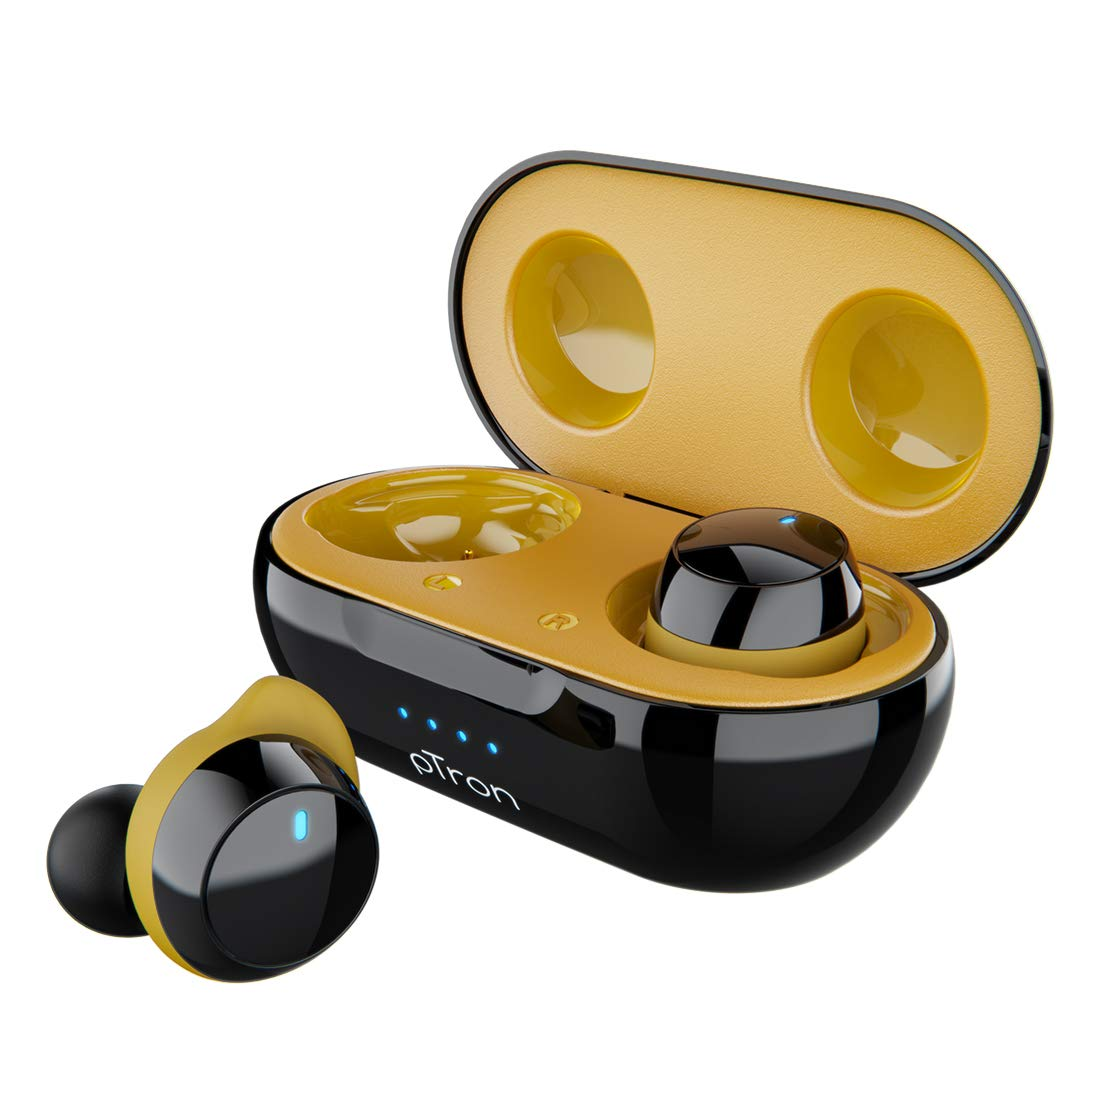 pTron Bassbuds Elite True Wireless Headphones (TWS), Bluetooth 5.0, Hi-Fi Sound with Bass, Auto Pairing, Passive Noise Cancellation, Voice Assistance, 12Hrs Playtime with Case & Mic - (Black & Yellow)